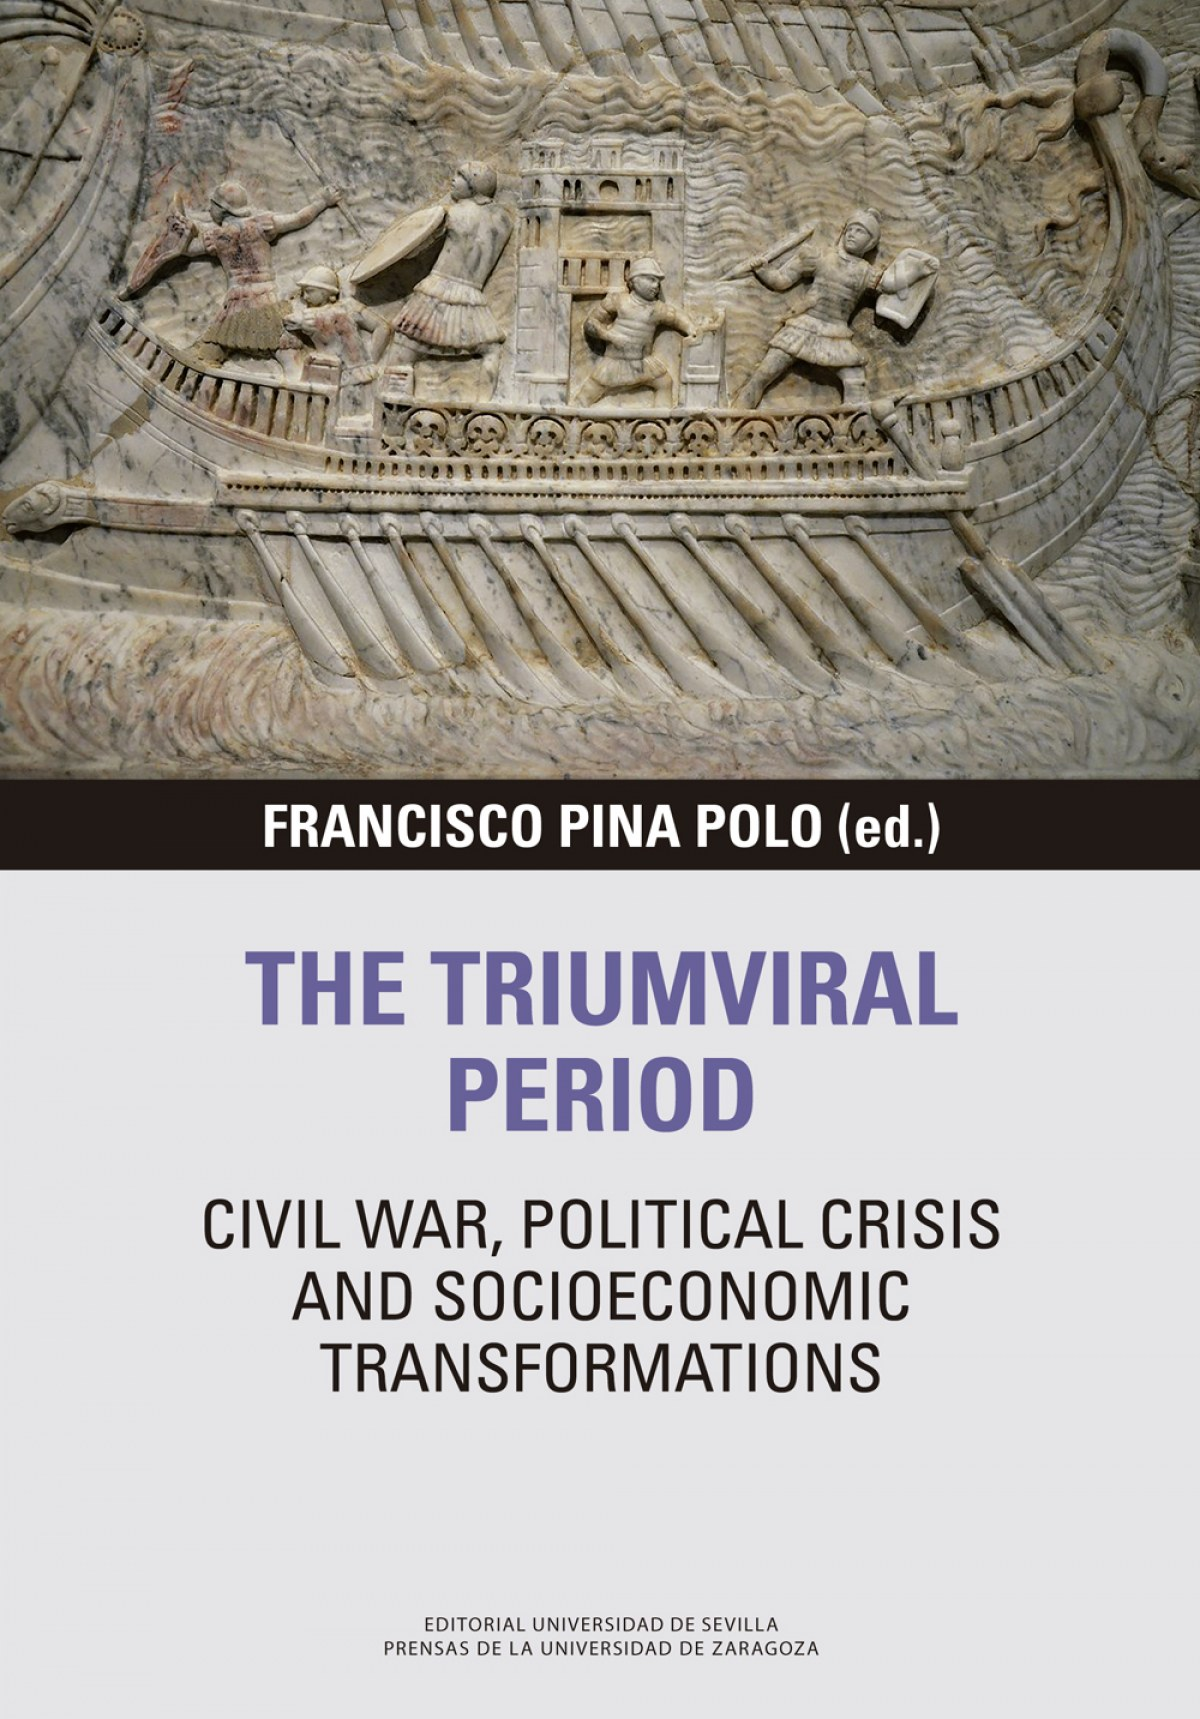 The triumviral period: civil war, political crisis and socioeconomic transformations 9788413400969